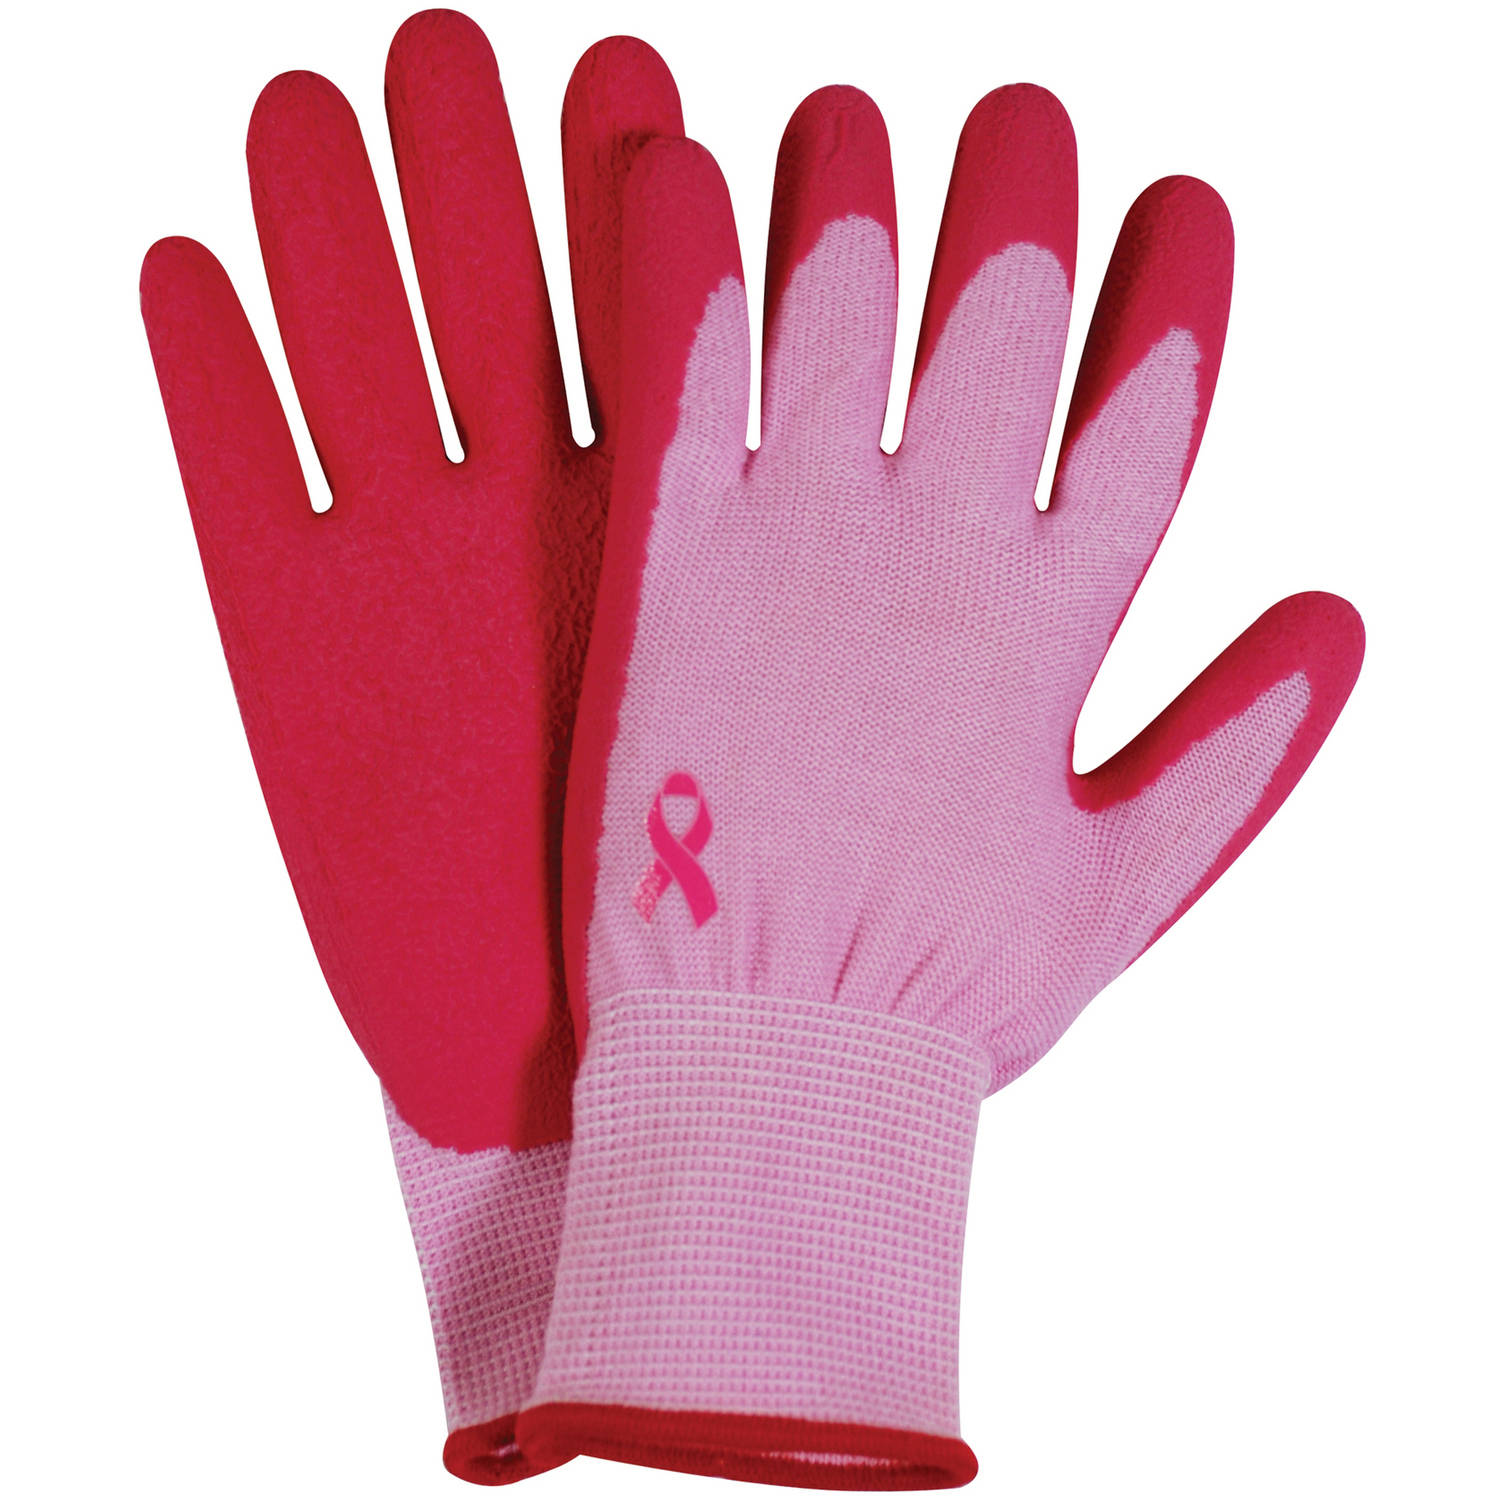 Magid Glove BC55TM Medium Breast Cancer Foundation Bamboo ROC Gloves